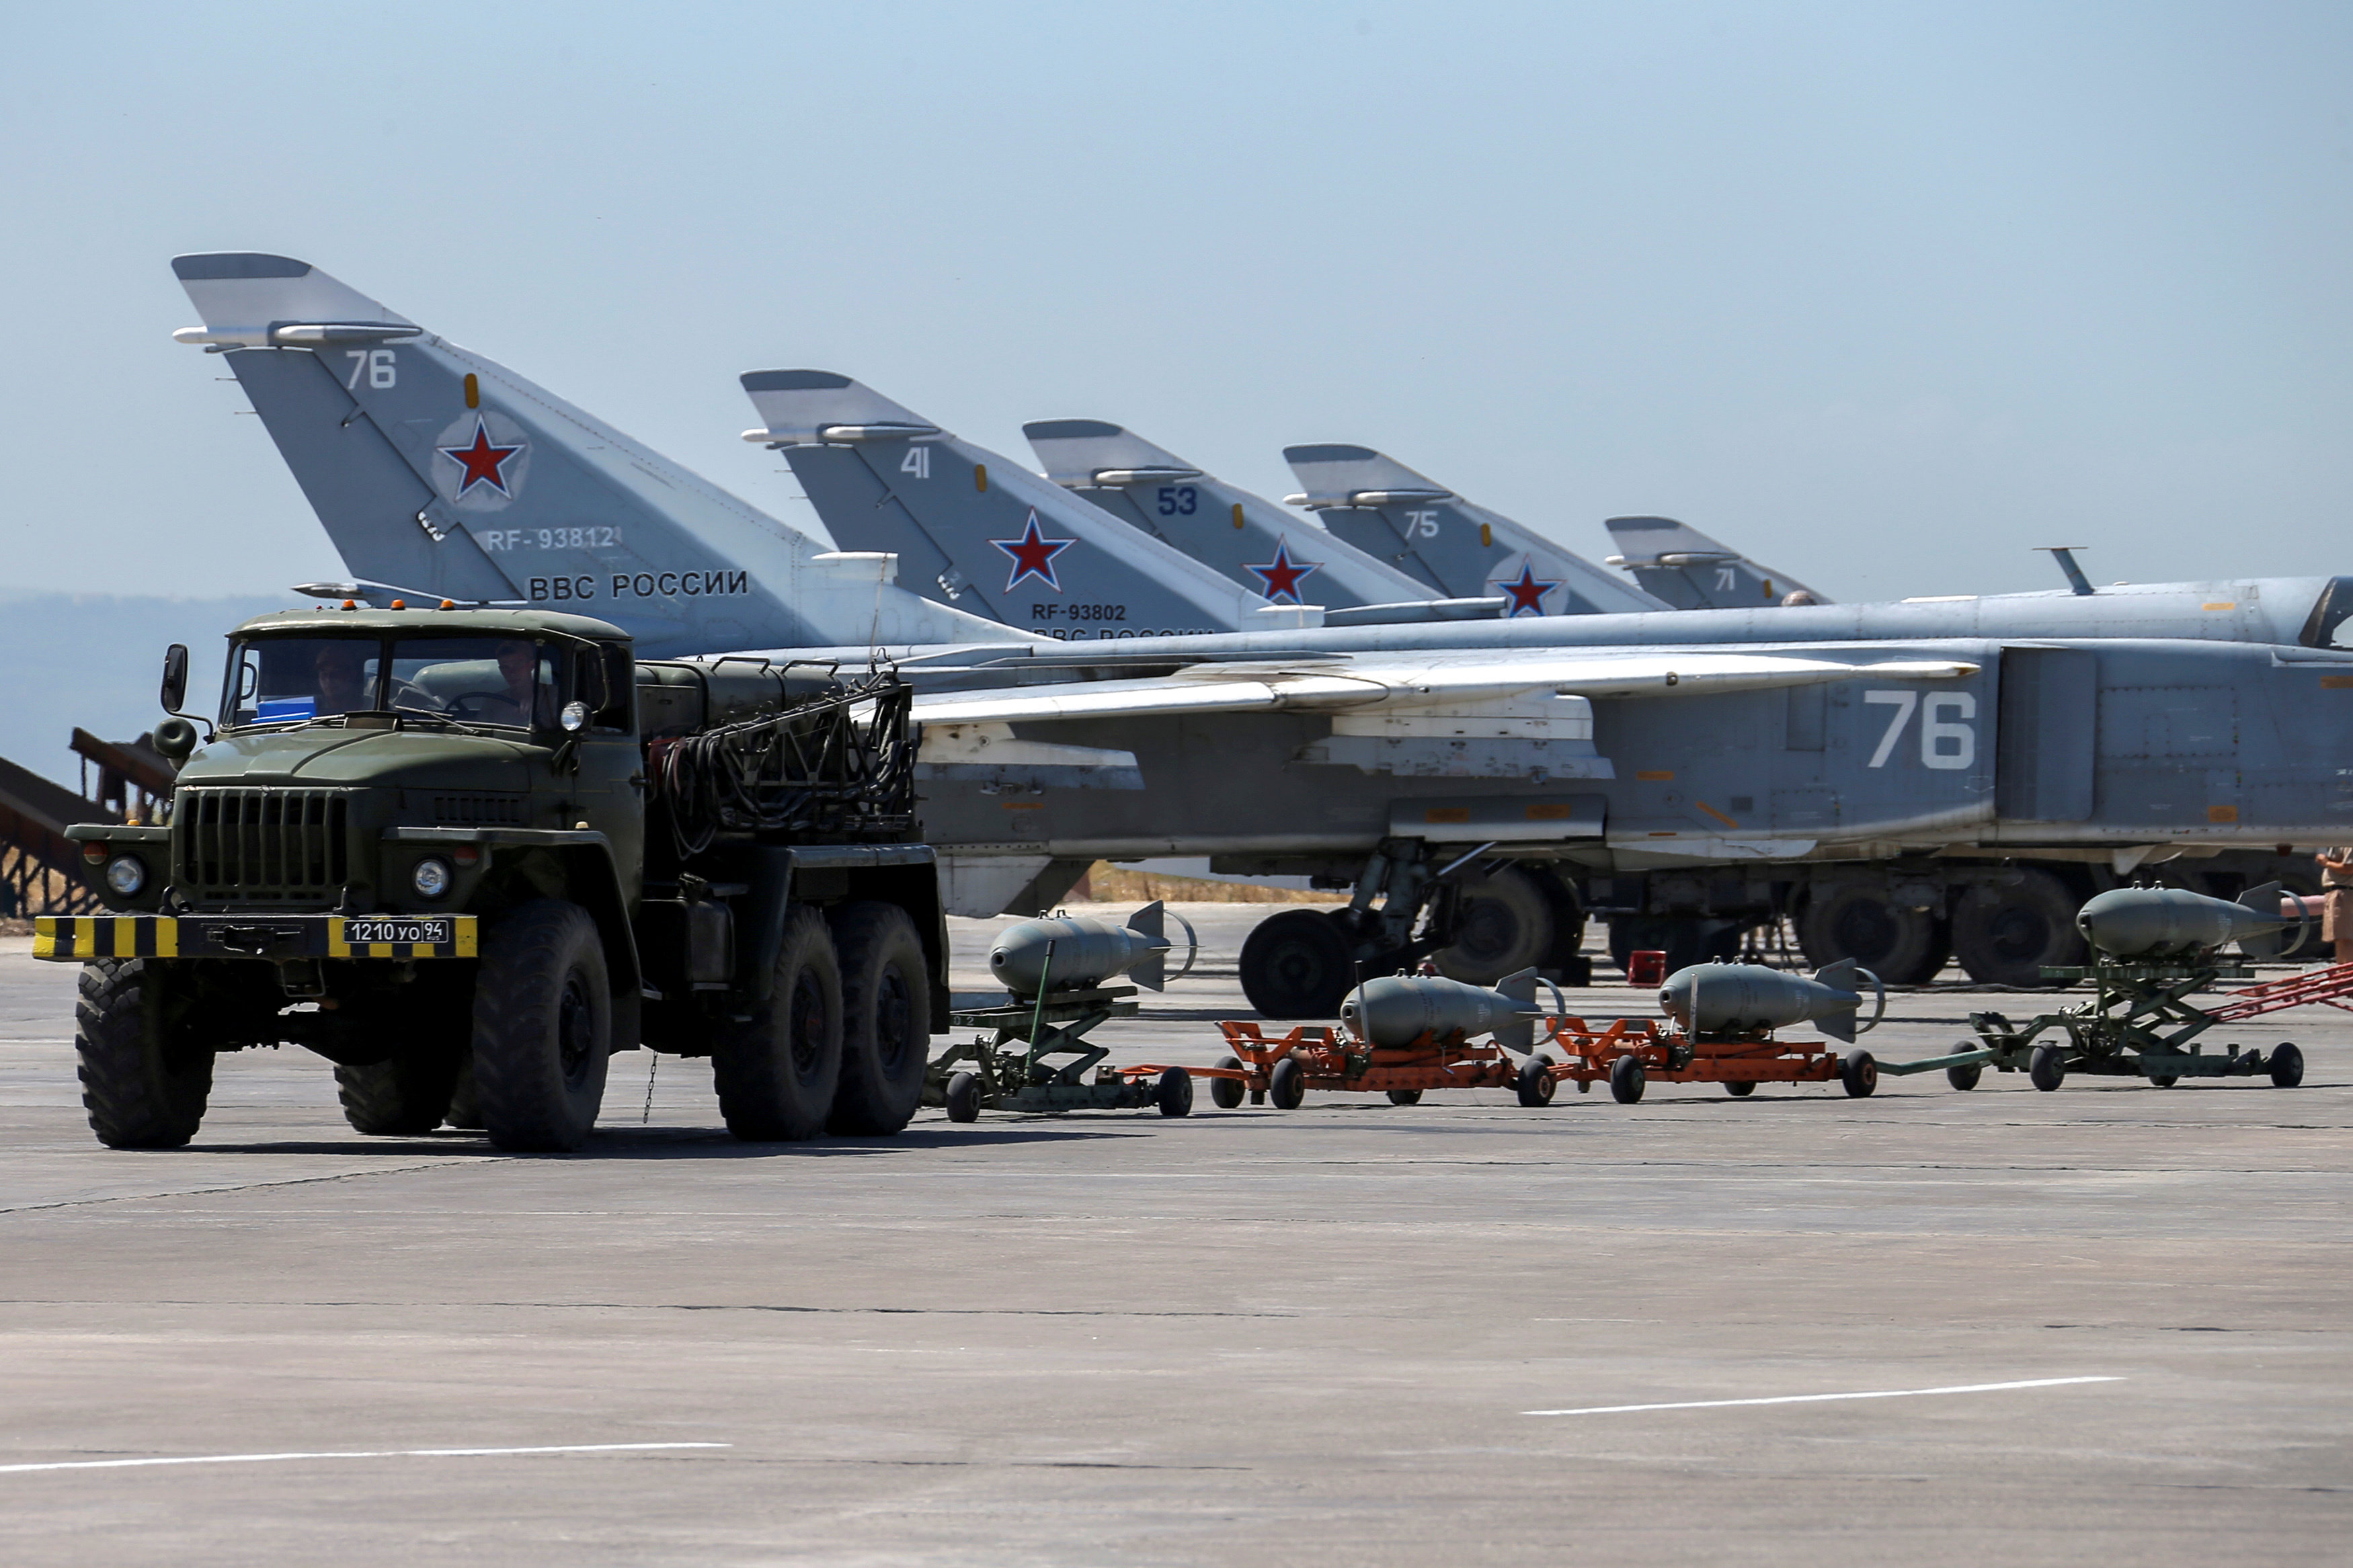 Russian military jets are seen at Hmeymim air base in Syria,